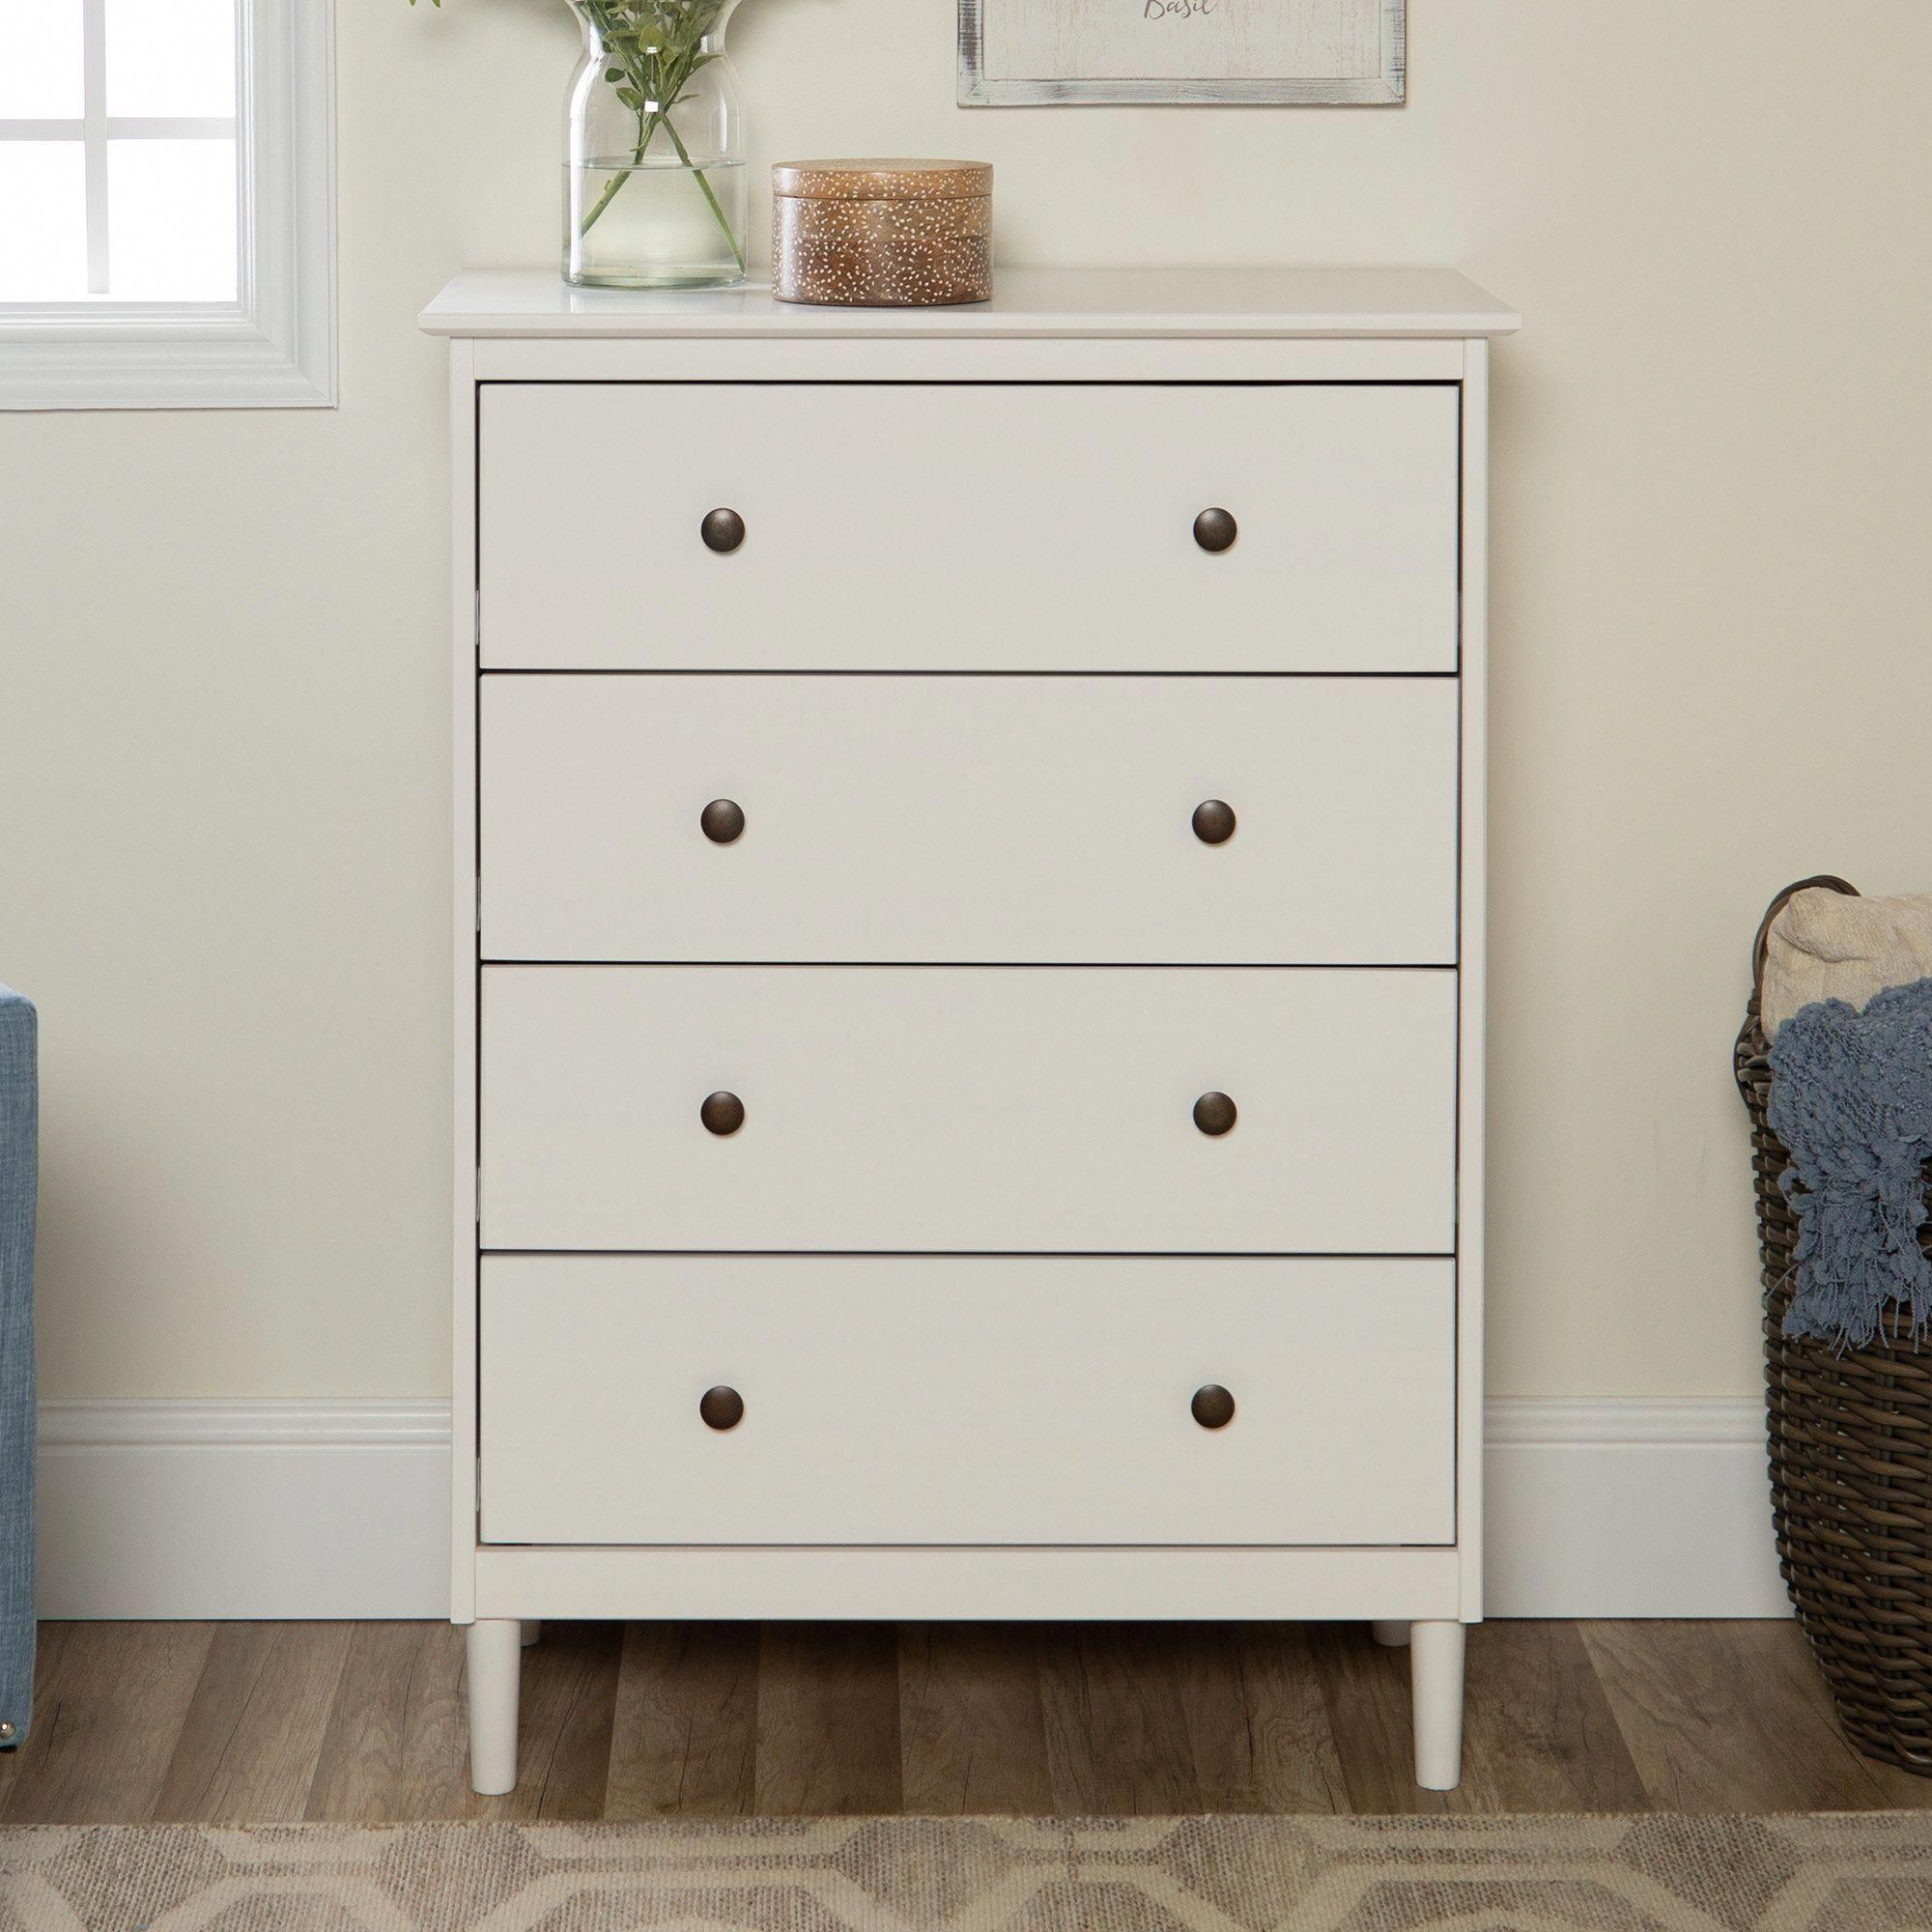 Furniture Casters Shippingfurnitureacrossthecountry White Chest Of Drawers White Chests Drawers [ 2000 x 2000 Pixel ]